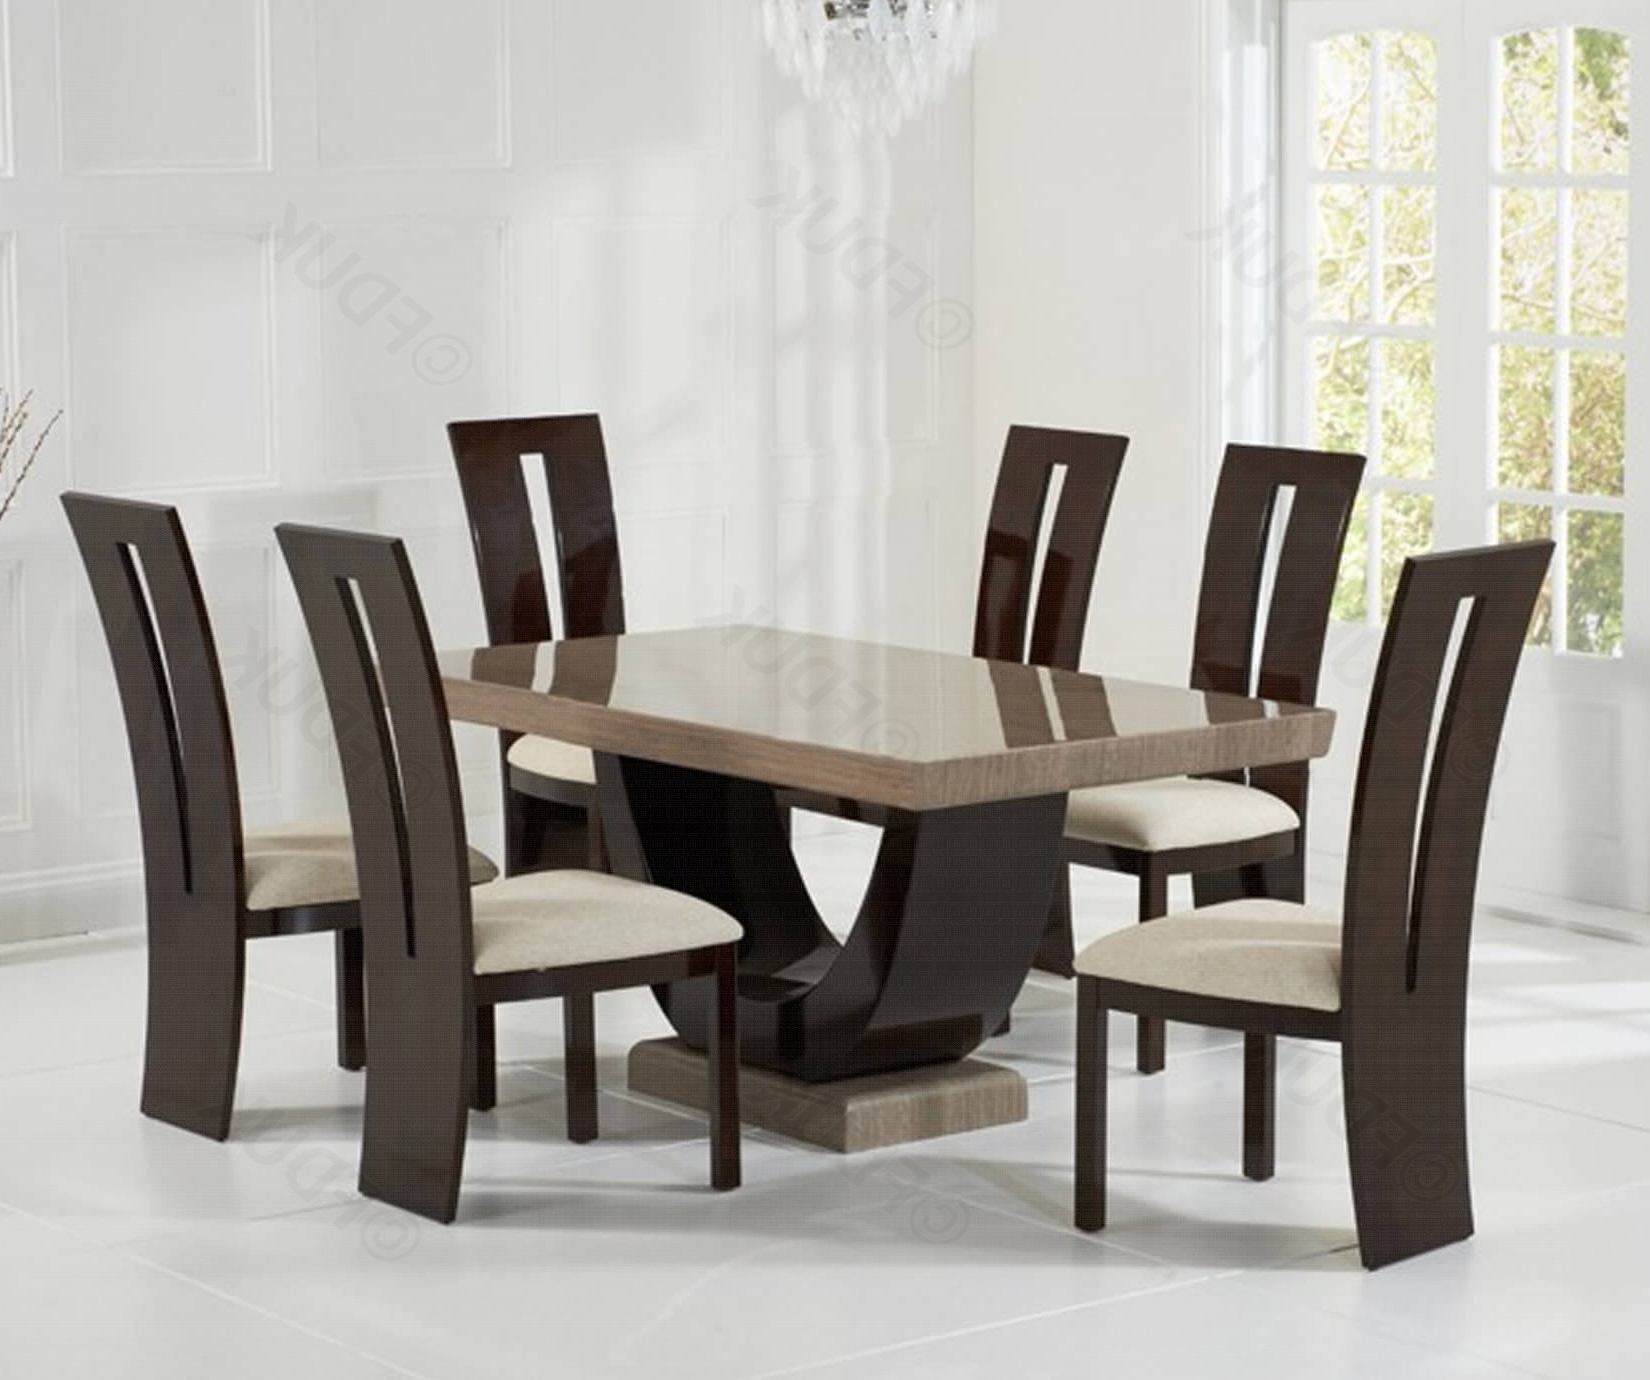 Brown Constituted Marble Dining Set With 6 Pertaining To Marble Dining Chairs (Gallery 24 of 25)